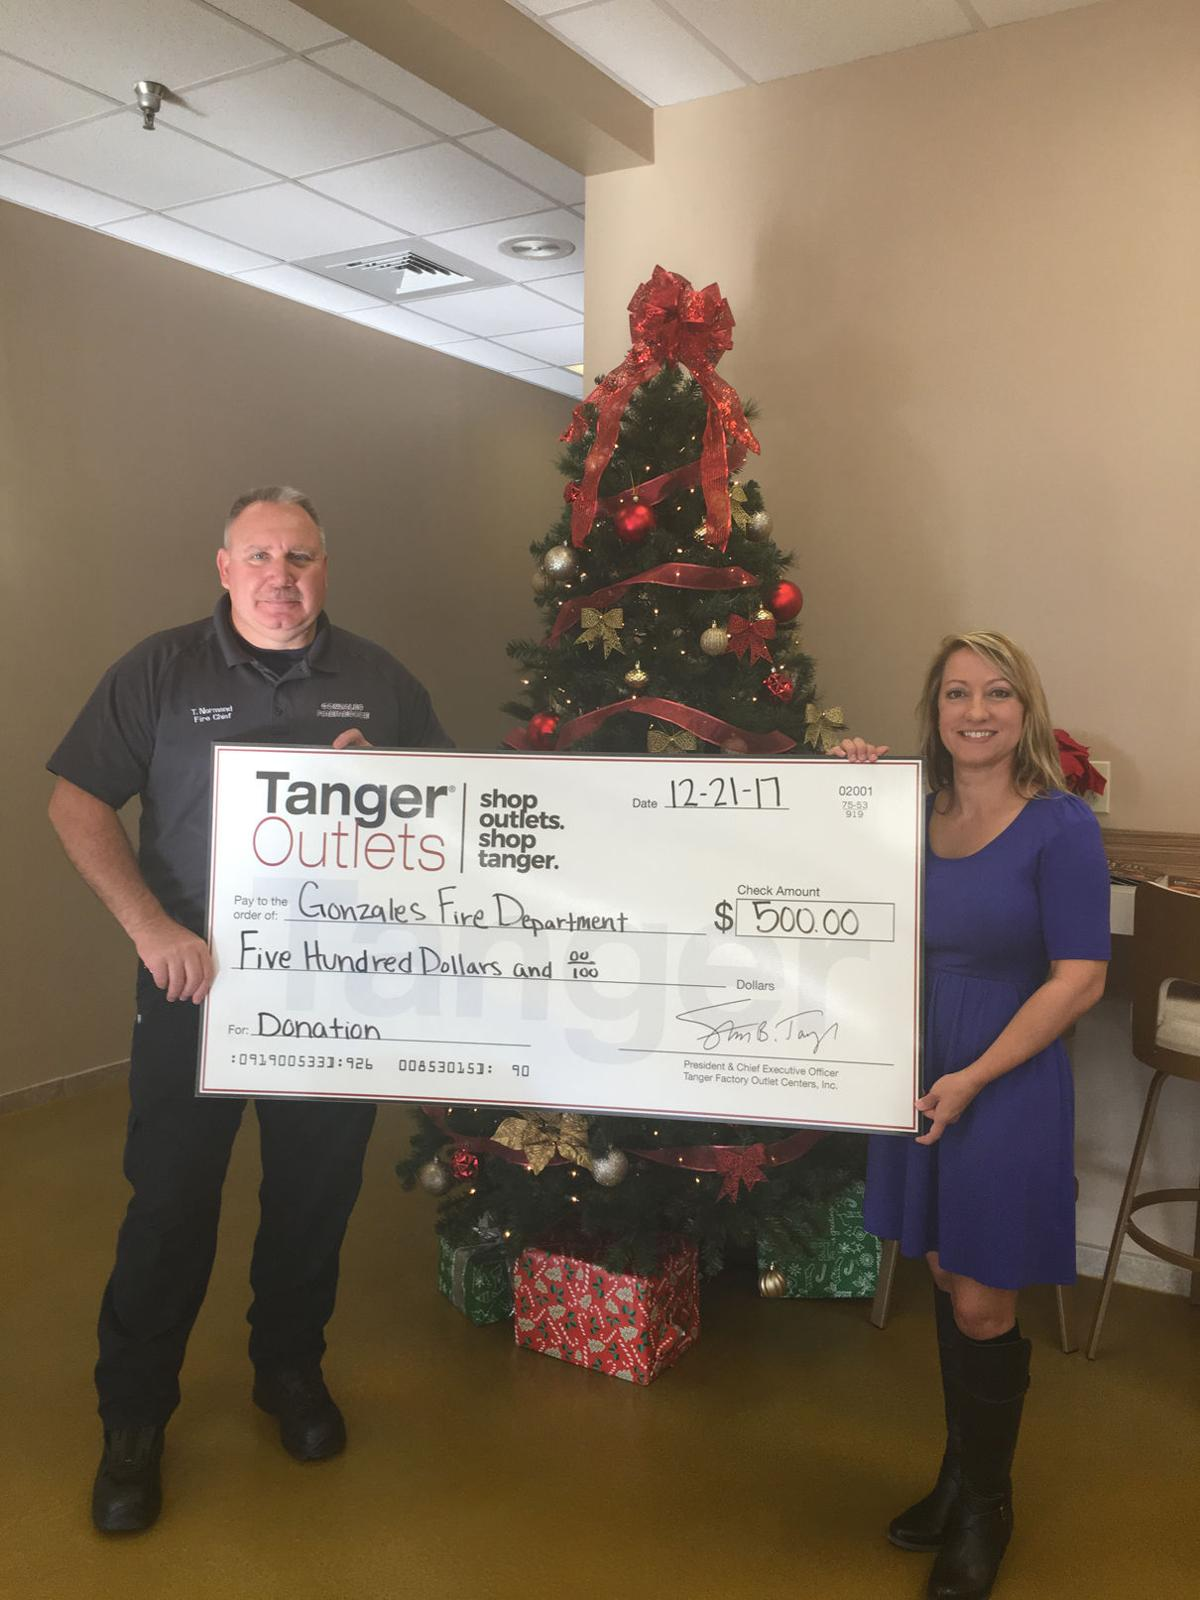 Tanger-Gonzales Fire Department Check Presentation.JPG